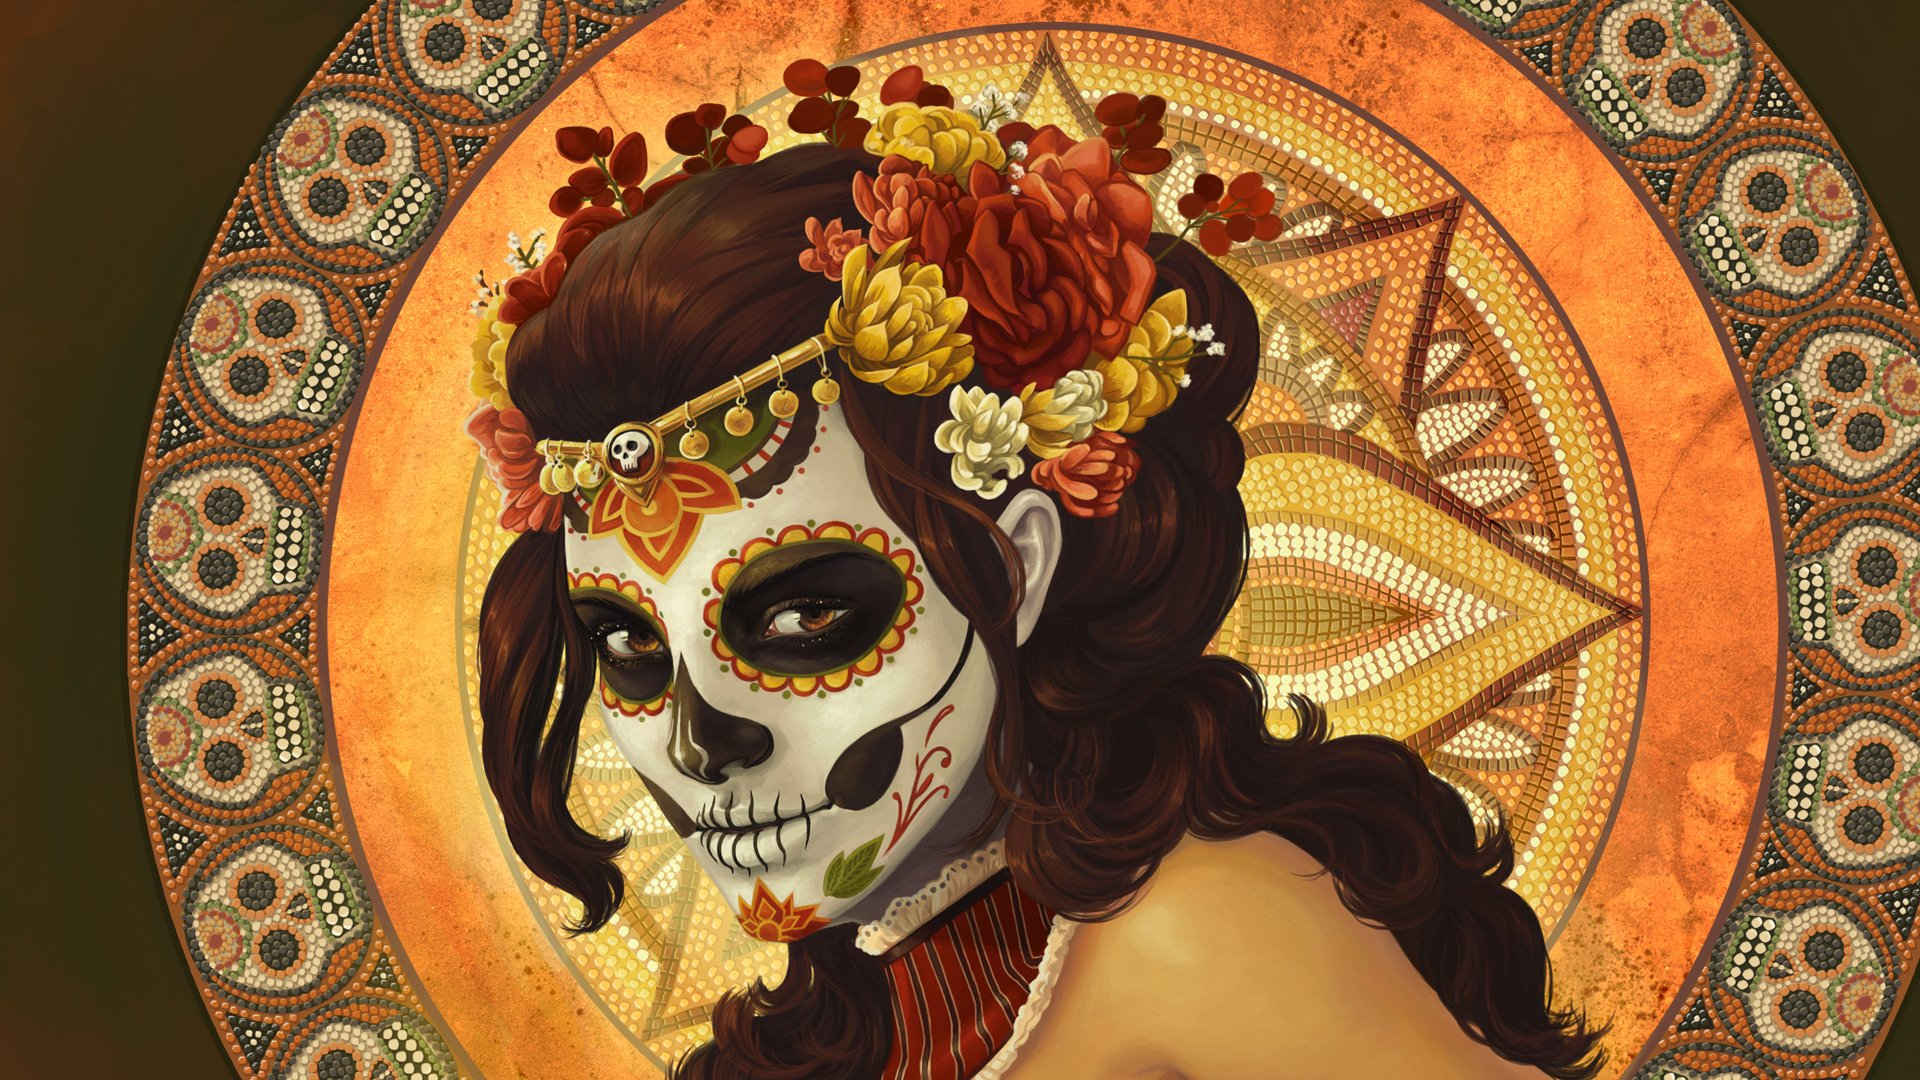 brunettes-deviantart-digital-art-drawn-flowers-illustrations-masks-mosaic-multicolor-skulls-s-wallpaper-wpc5801470